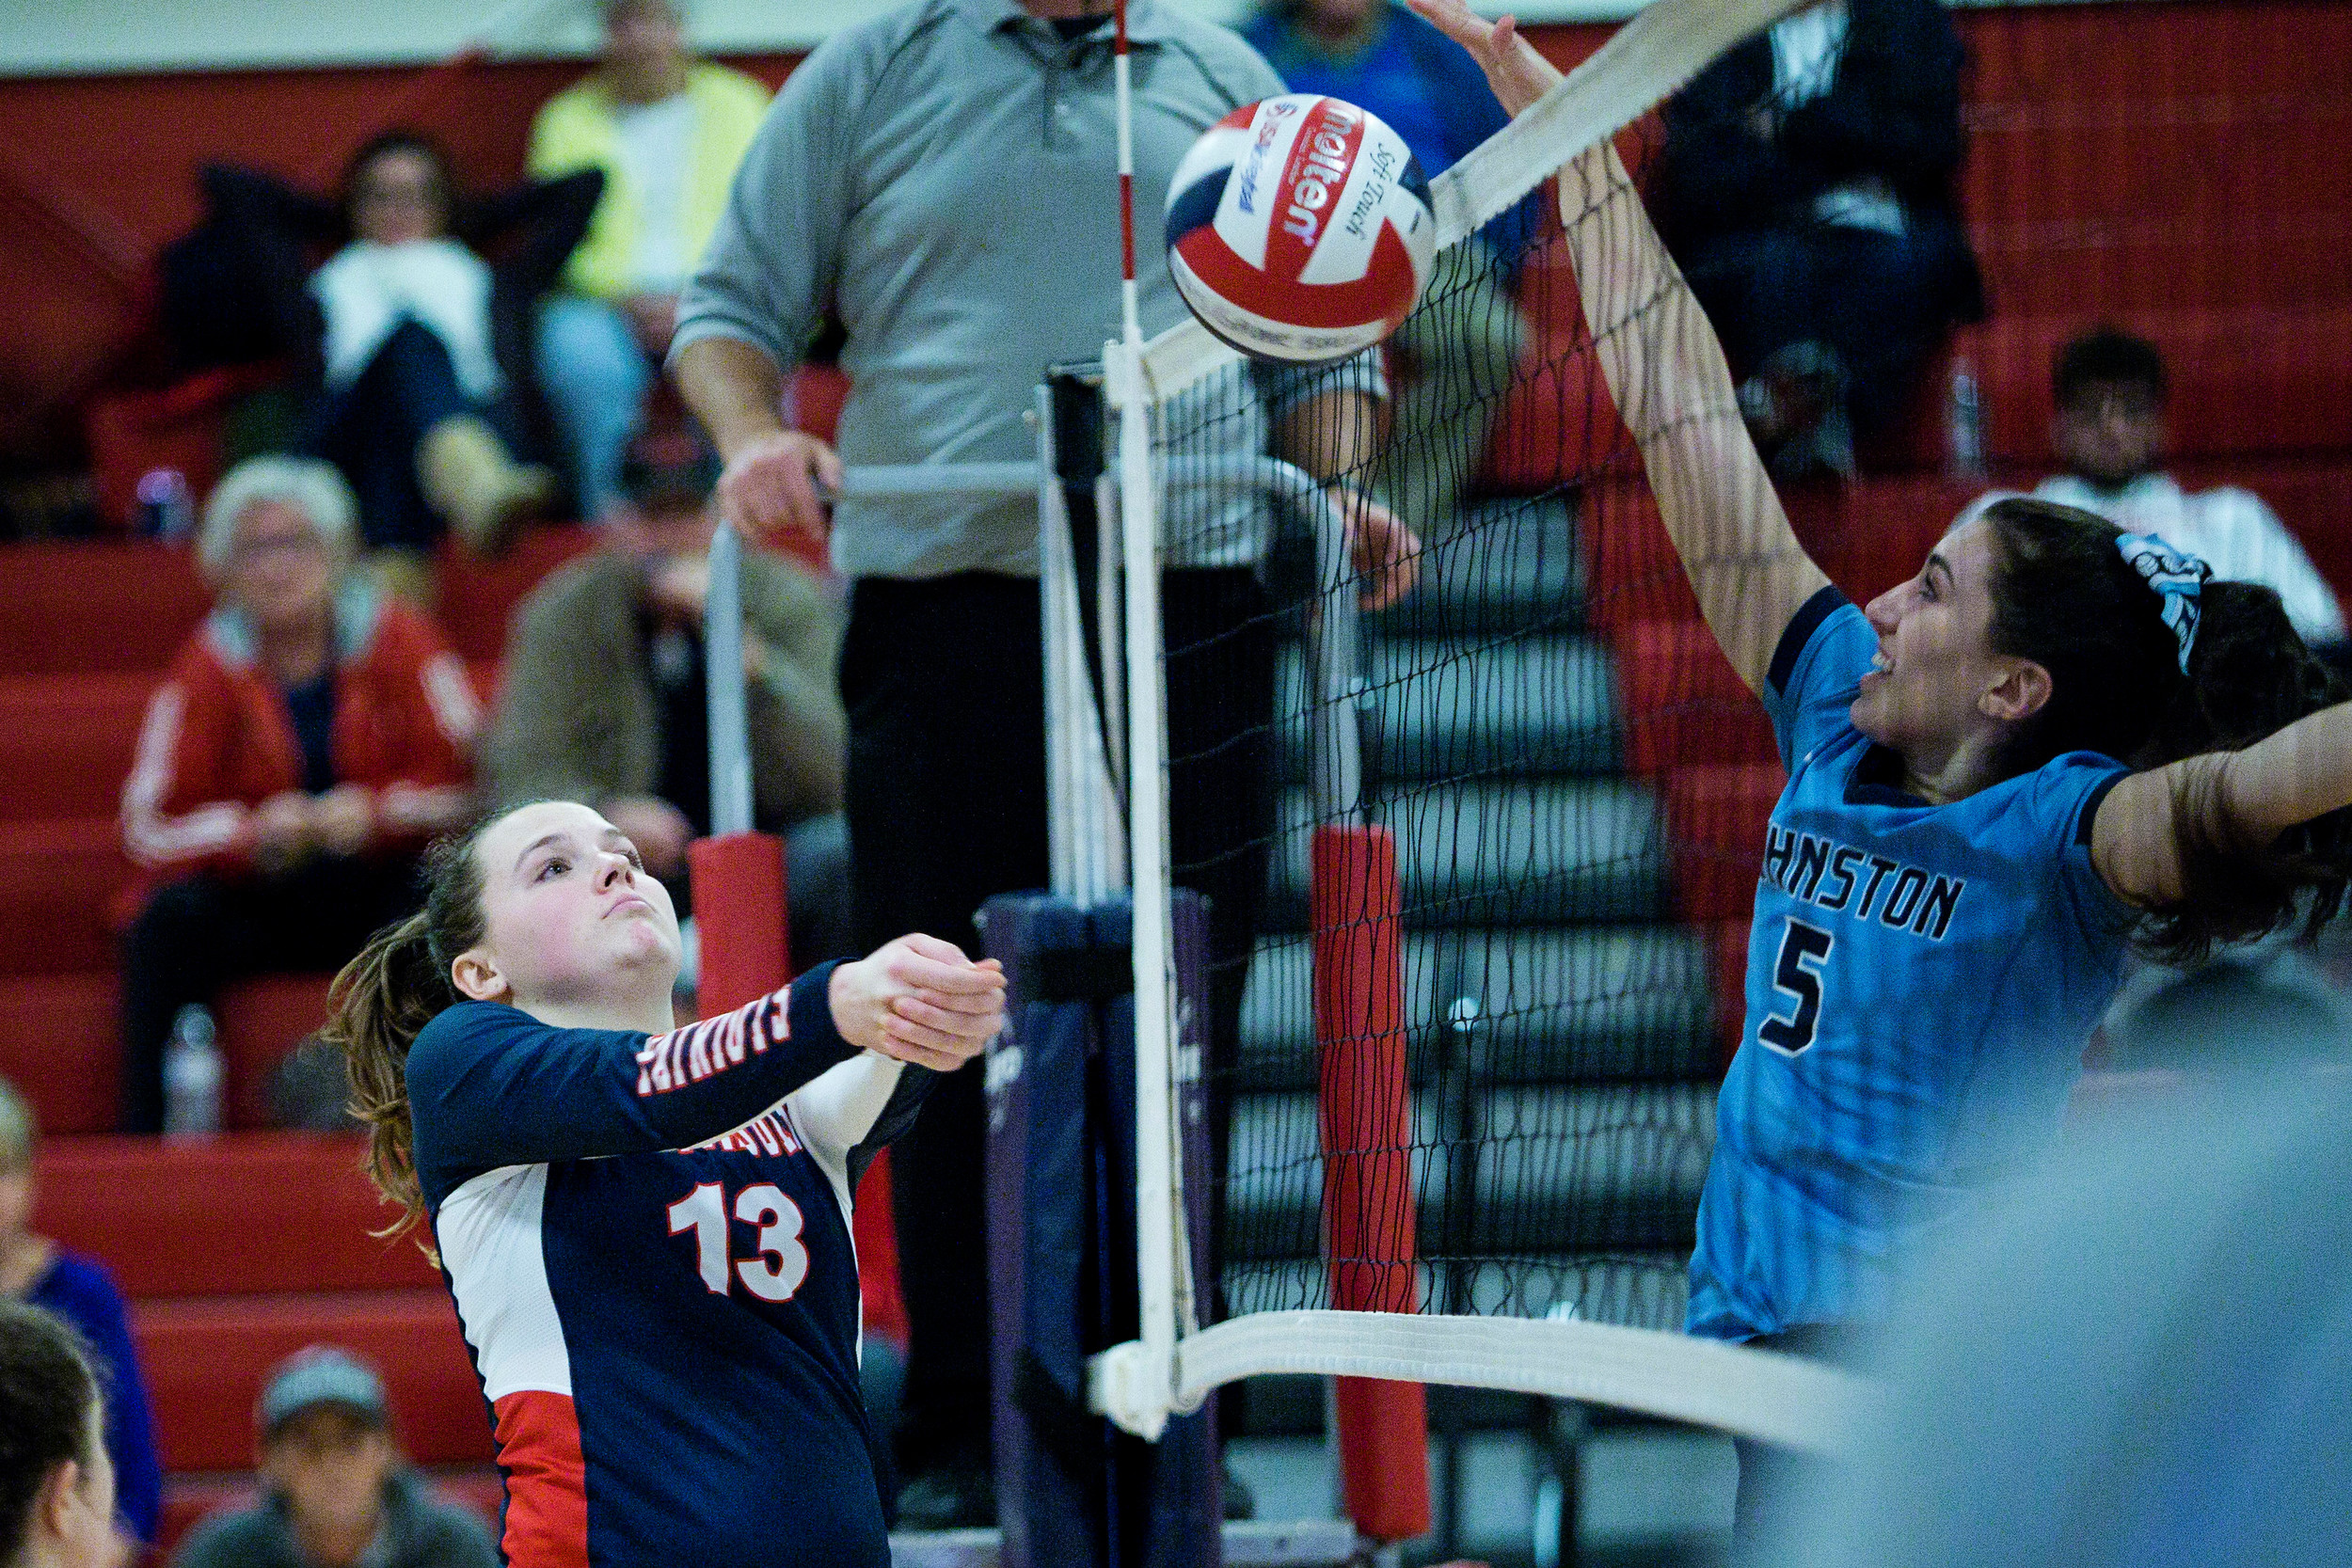 A Johnston player jumps to block Portsmouth's Celia von Recum from sending the ball over the net.